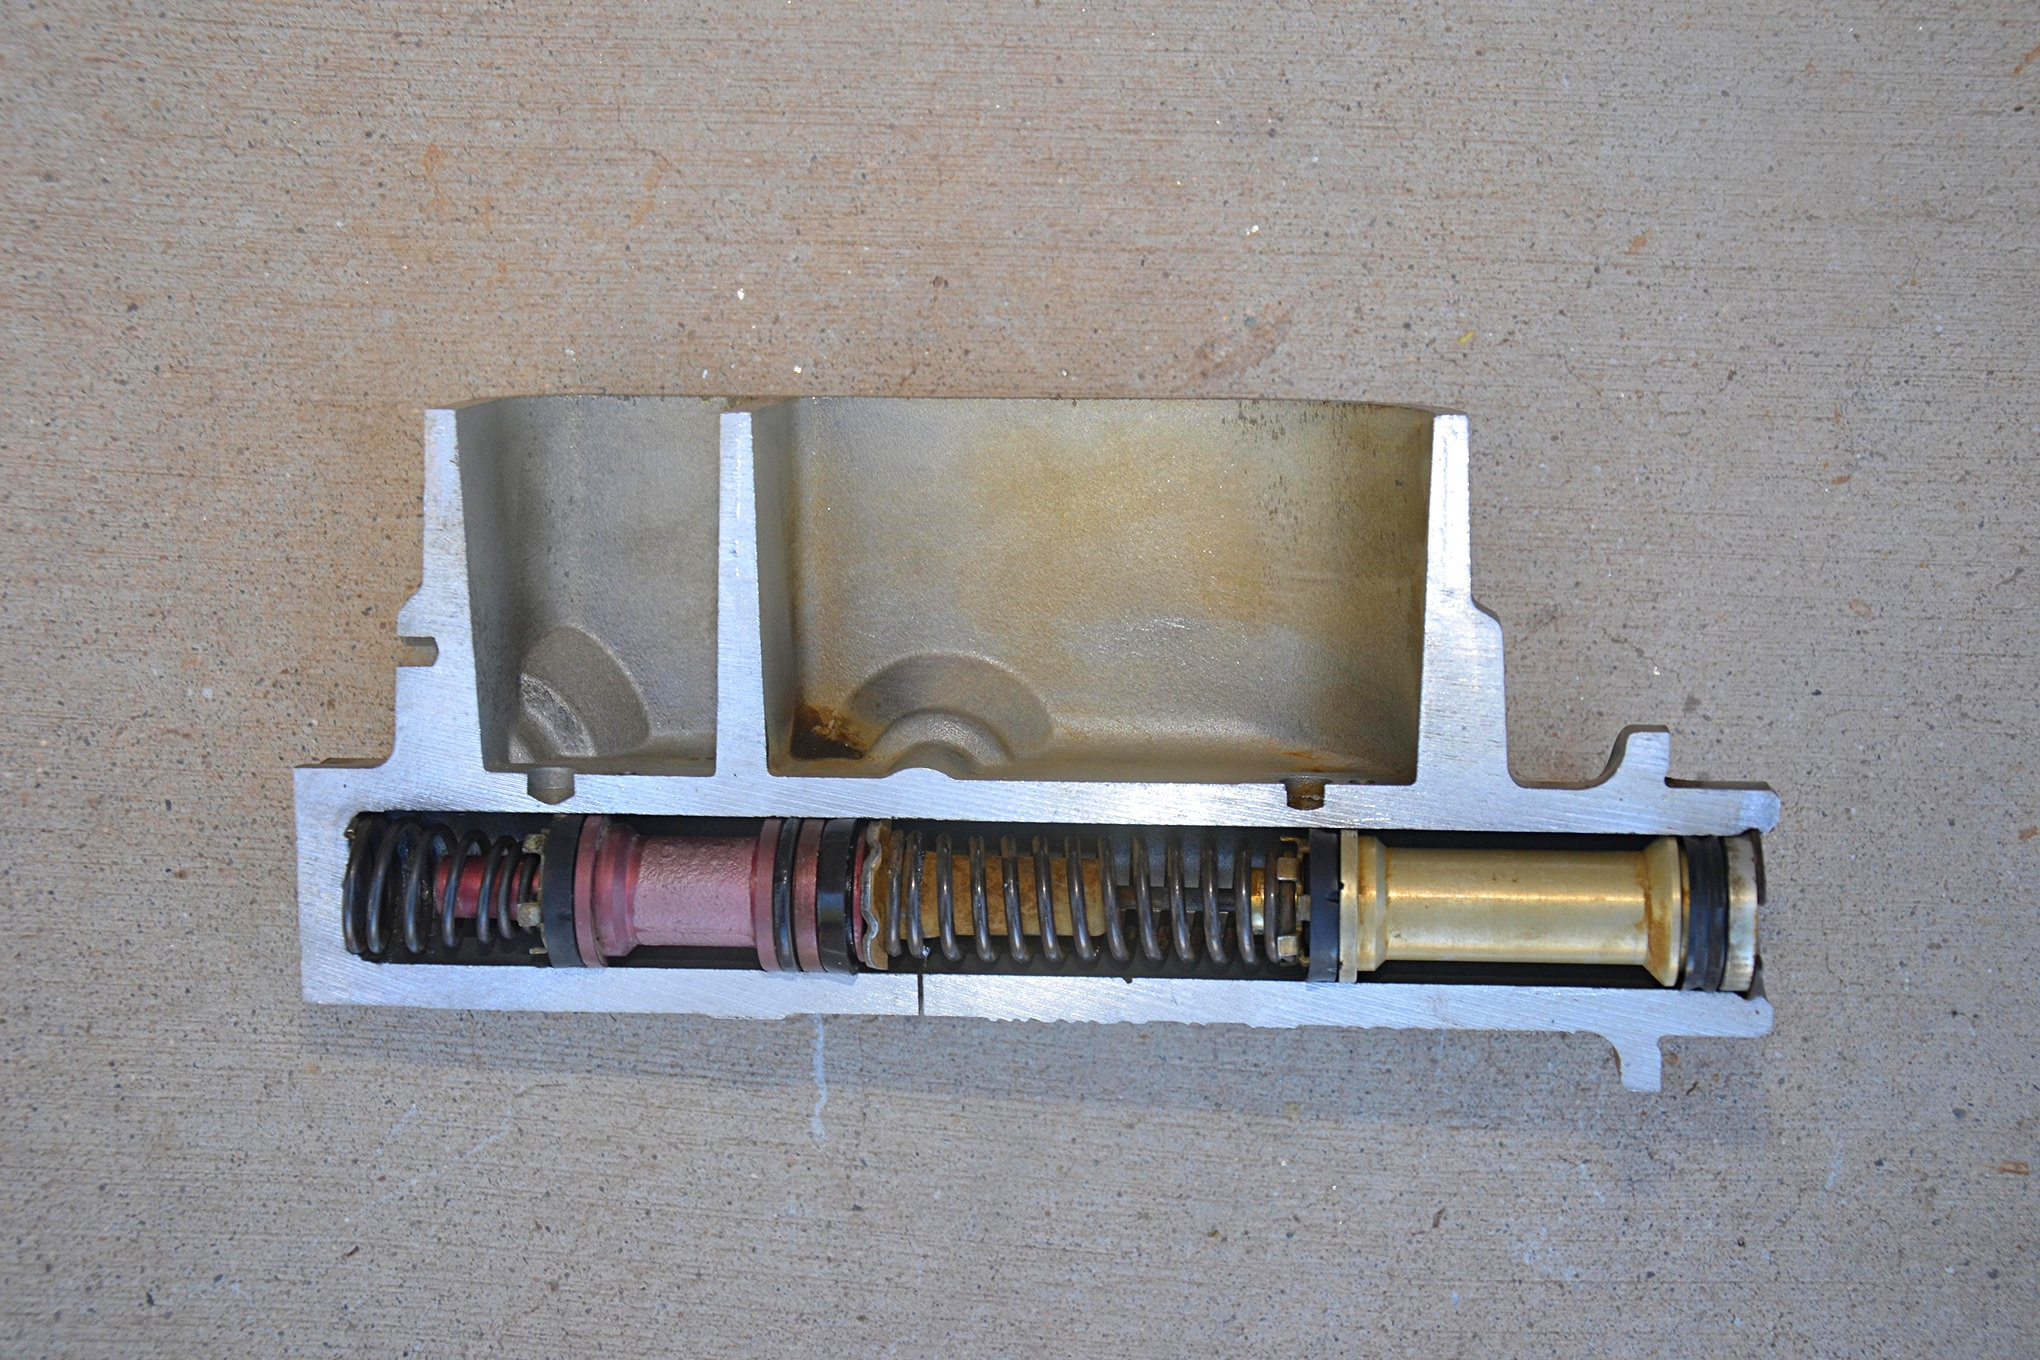 We cut through an old brake master cylinder to give you a look inside. You can see the two reservoirs for the two circuits, front and rear. Holes in the bottom of each reservoir allow fluid down into the system. Below, pistons slide past the fill holes and compress fluid as you press the brakes. Each piston has sweeper seals that match the inside diameter of the brake master cylinder and holes where front and rear brake lines lead to the proportioning valve or to the calipers and/or wheel cylinders.